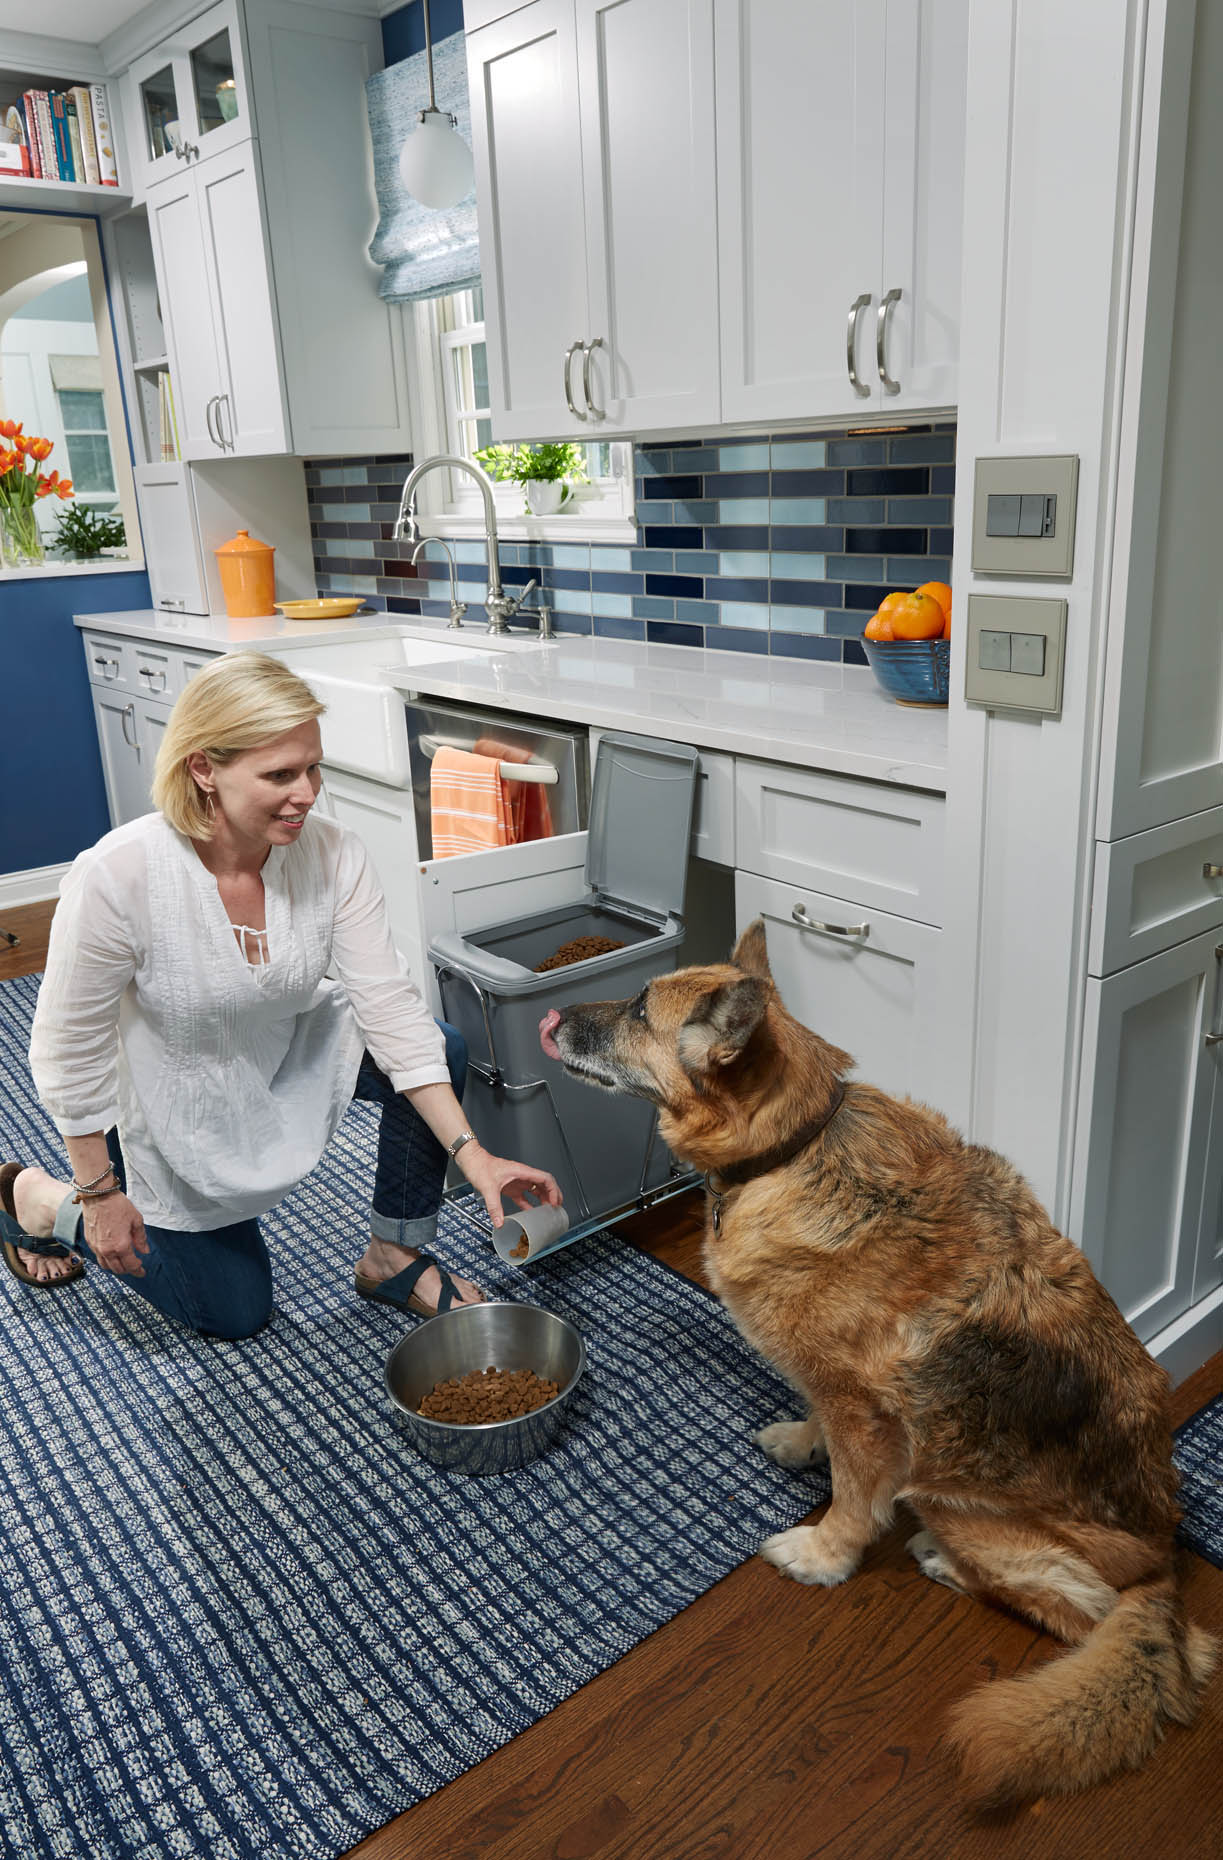 fresh-traditional-kitchen-dog-food-storage-minneapolis-interior-designer.jpg